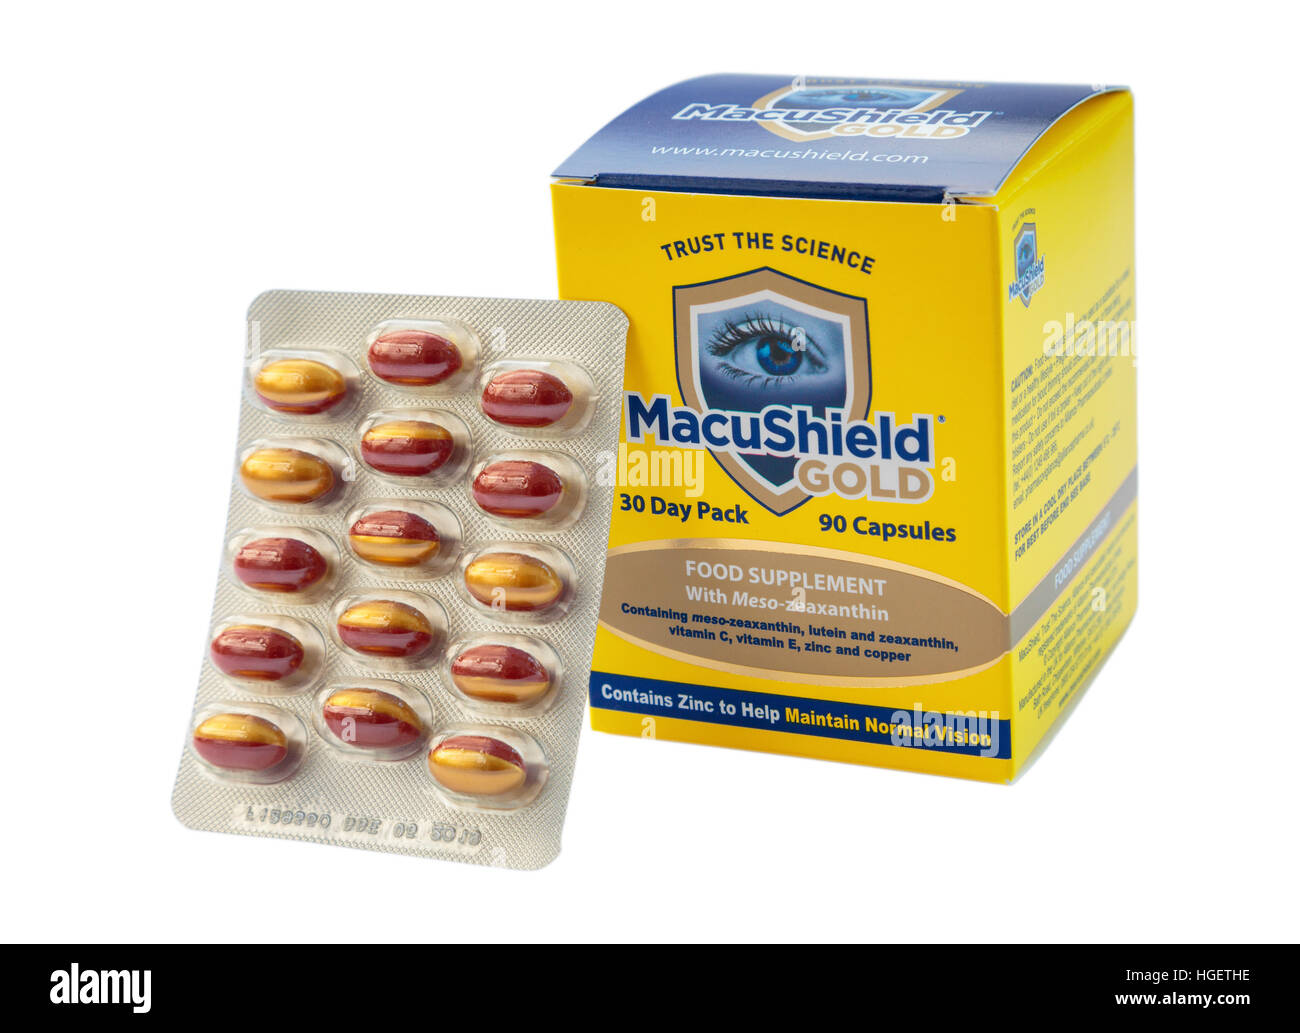 Packet of MacuShield food supplement tablets for health of retina in eye and preventing Age-related Macular Degeneration - Stock Image